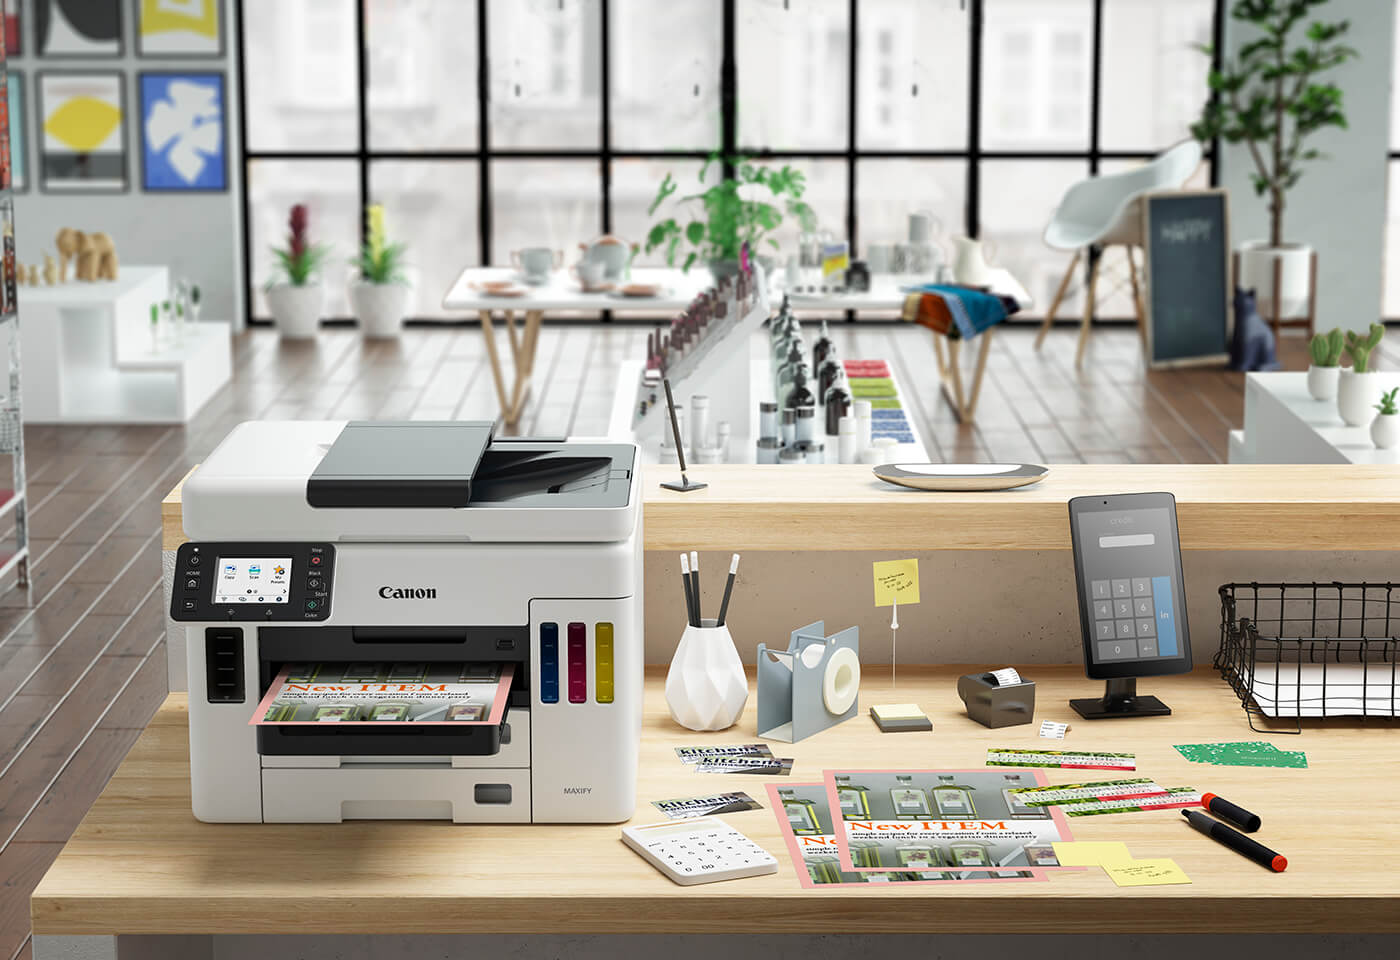 With MAXIFY GX7060MegaTank, users can print, scan, copy, and connect to the cloud via the Canon PRINT app